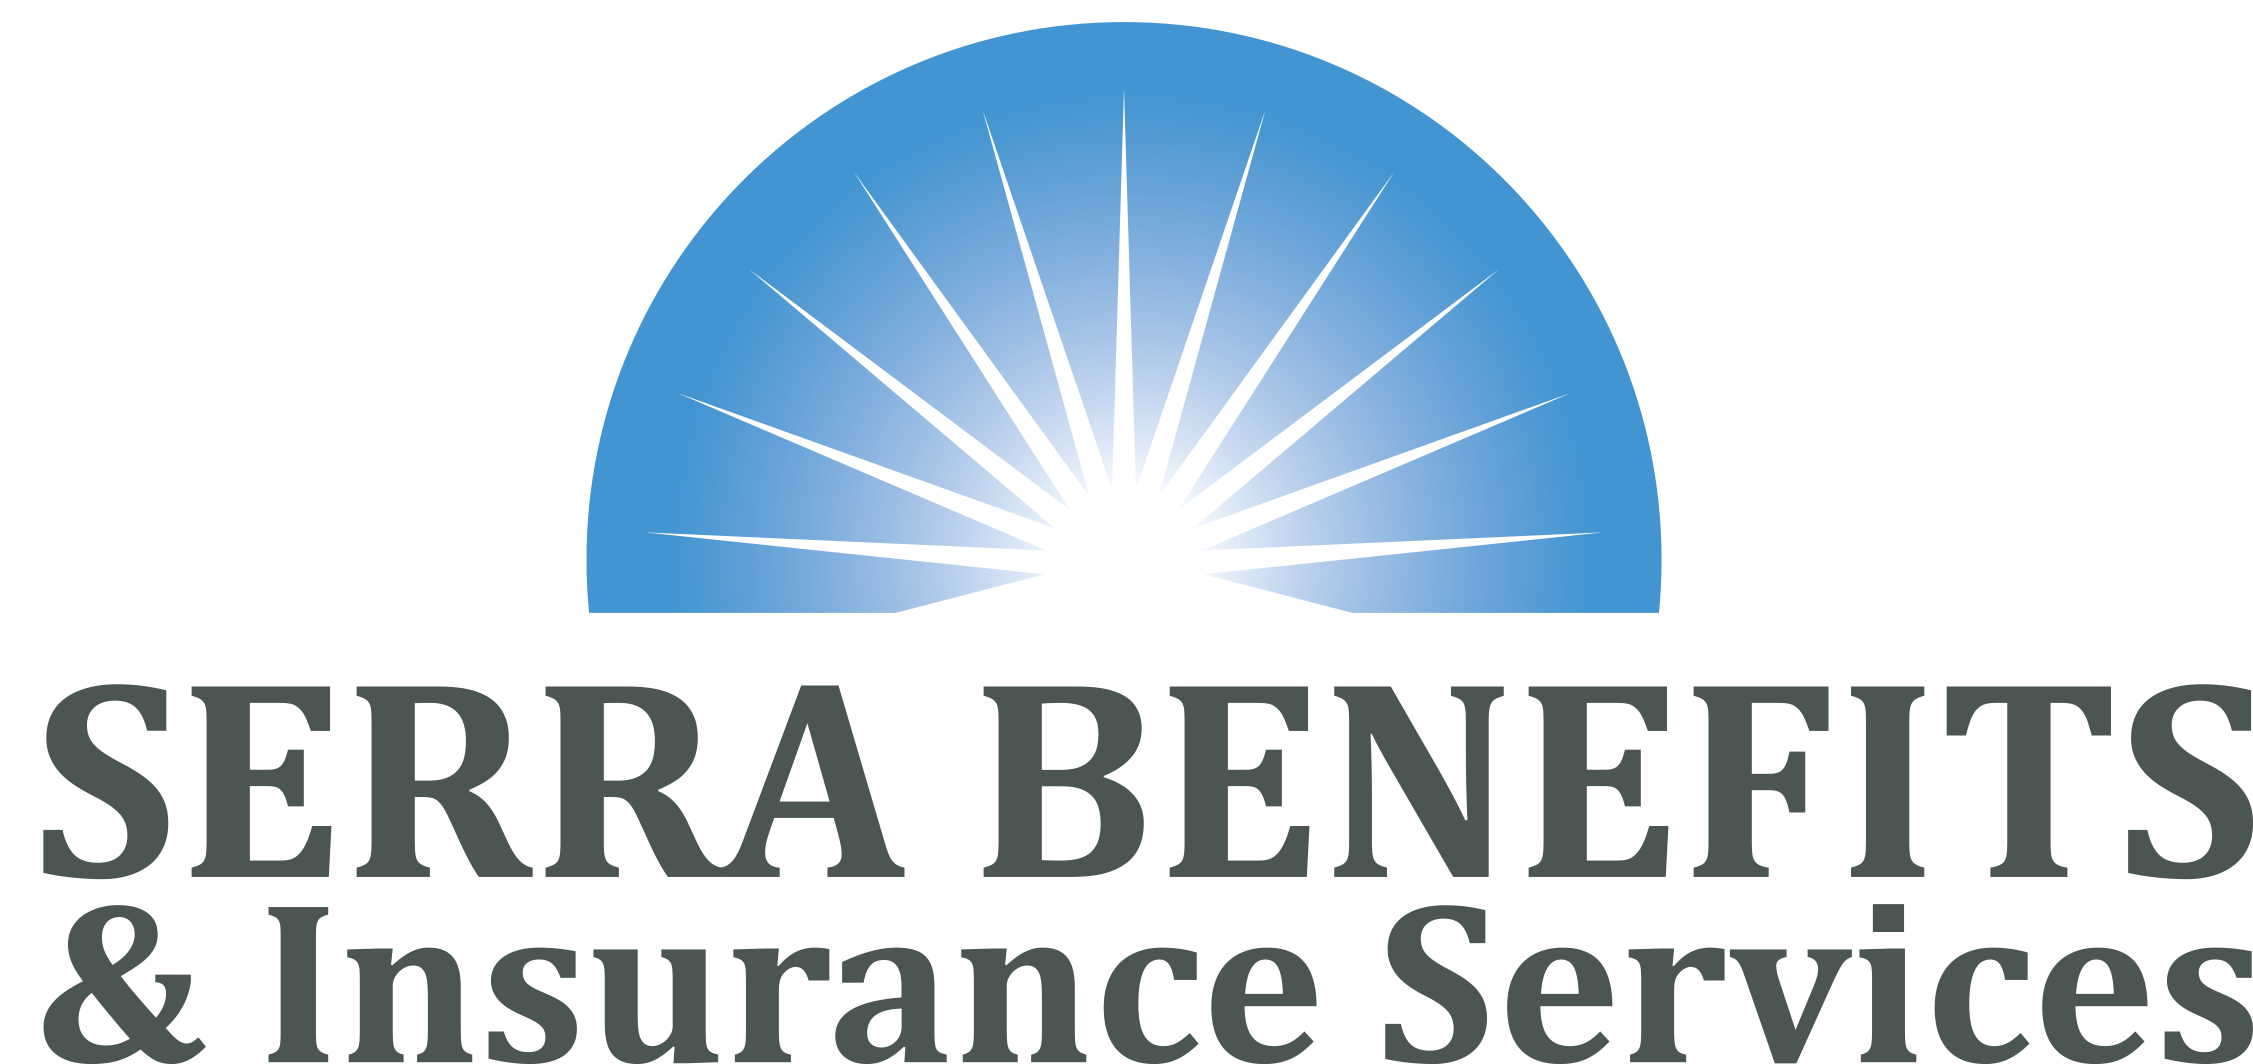 Serra Benefits & Insurance Services